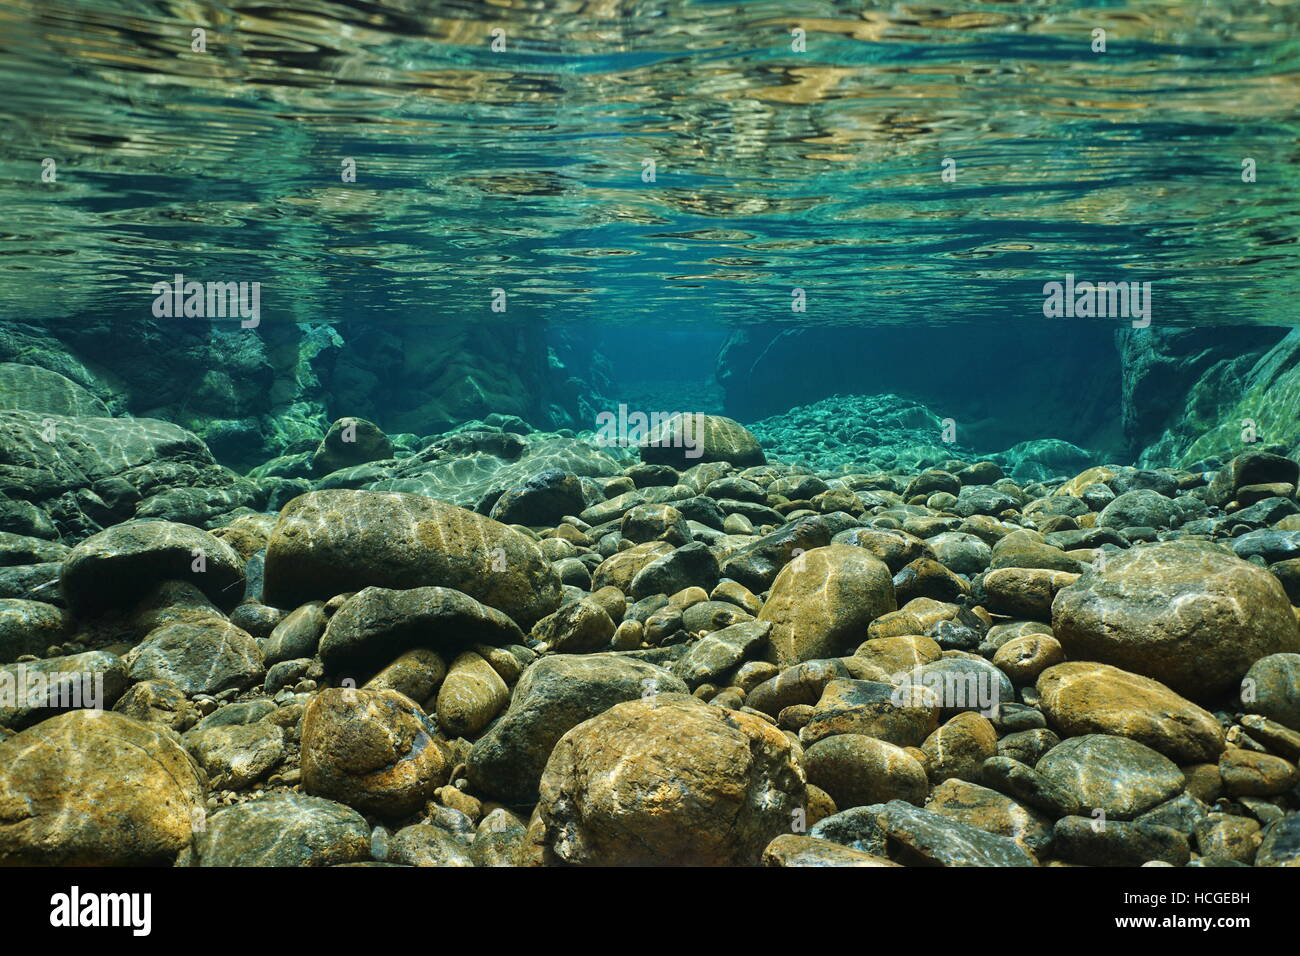 Rocks underwater on riverbed with clear freshwater, Dumbea river, Grande Terre, New Caledonia - Stock Image